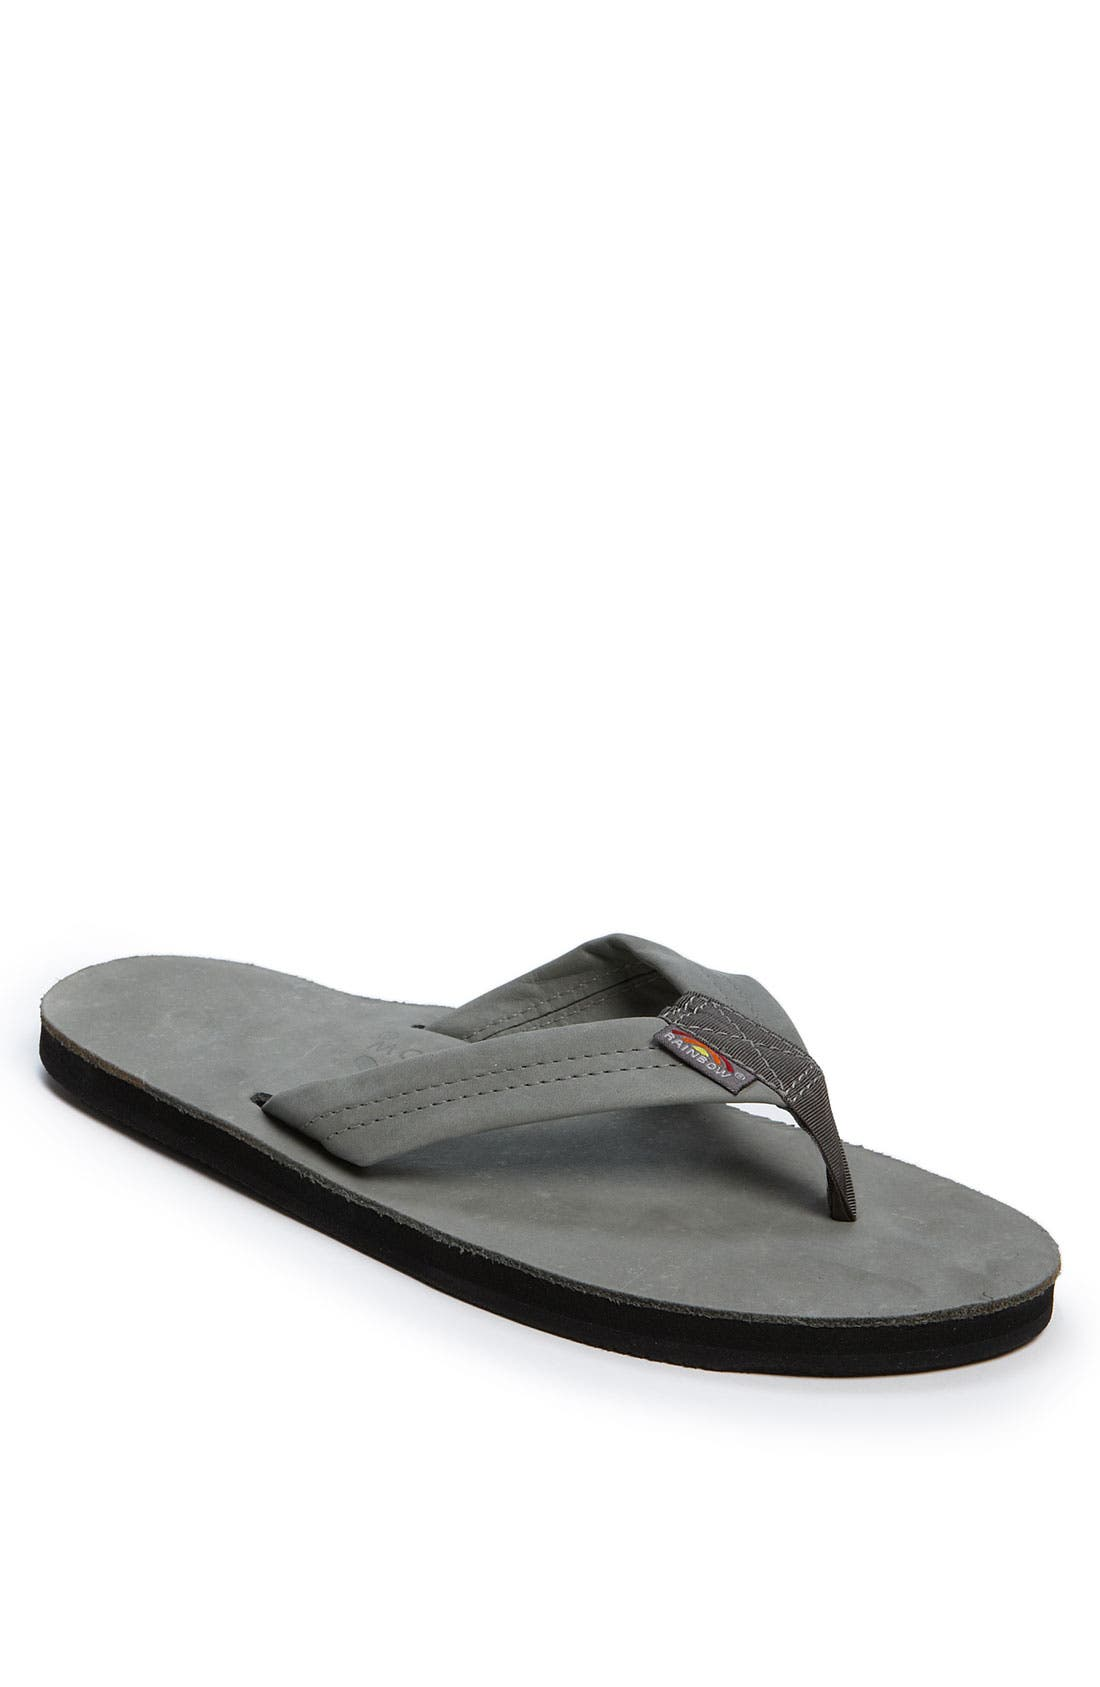 '301Alts' Sandal,                         Main,                         color, Grey